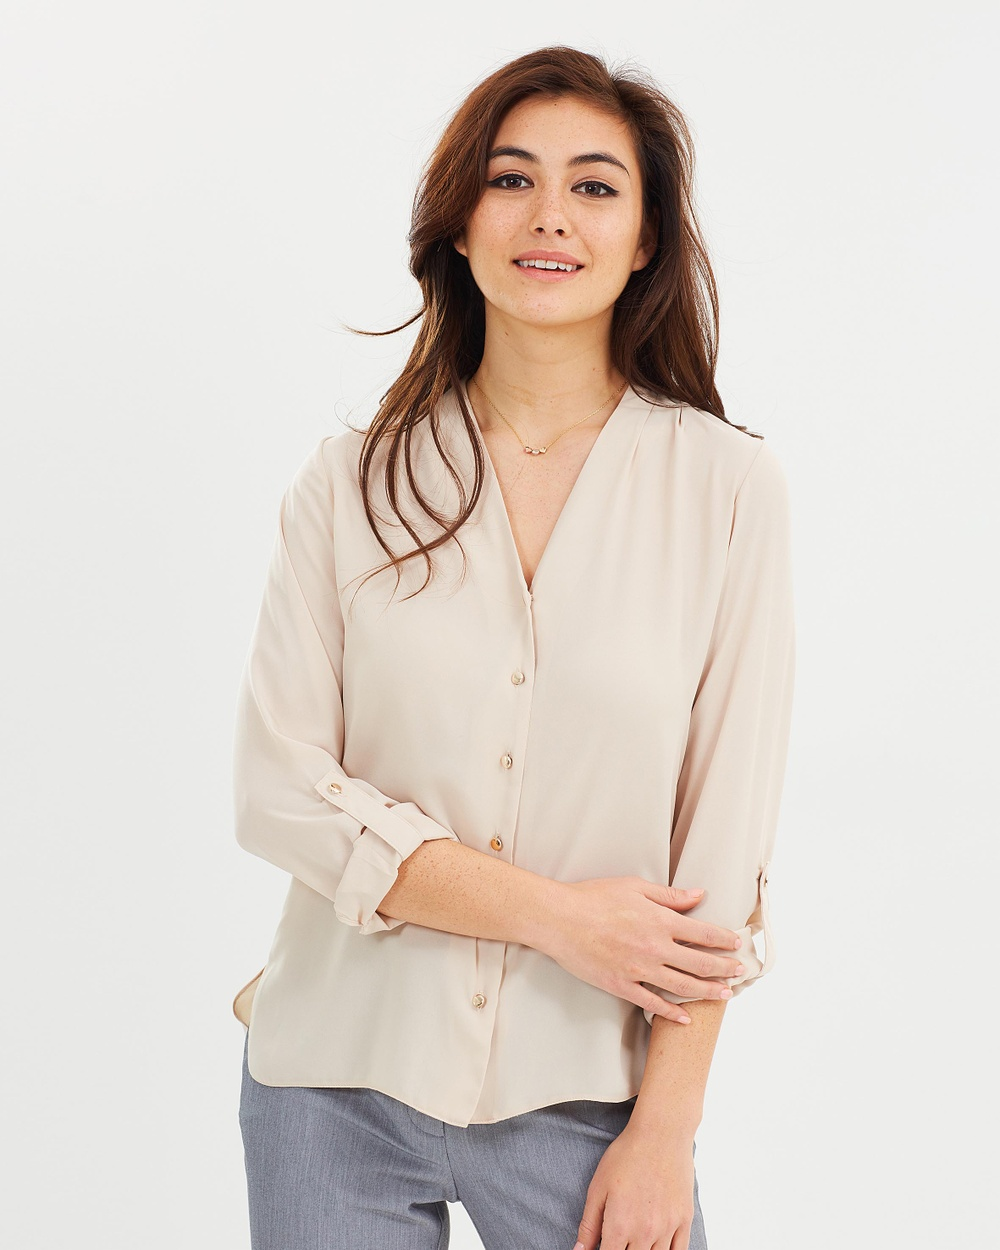 Dorothy Perkins May Stone Sleeve Top Tops Cream May Stone Sleeve Top